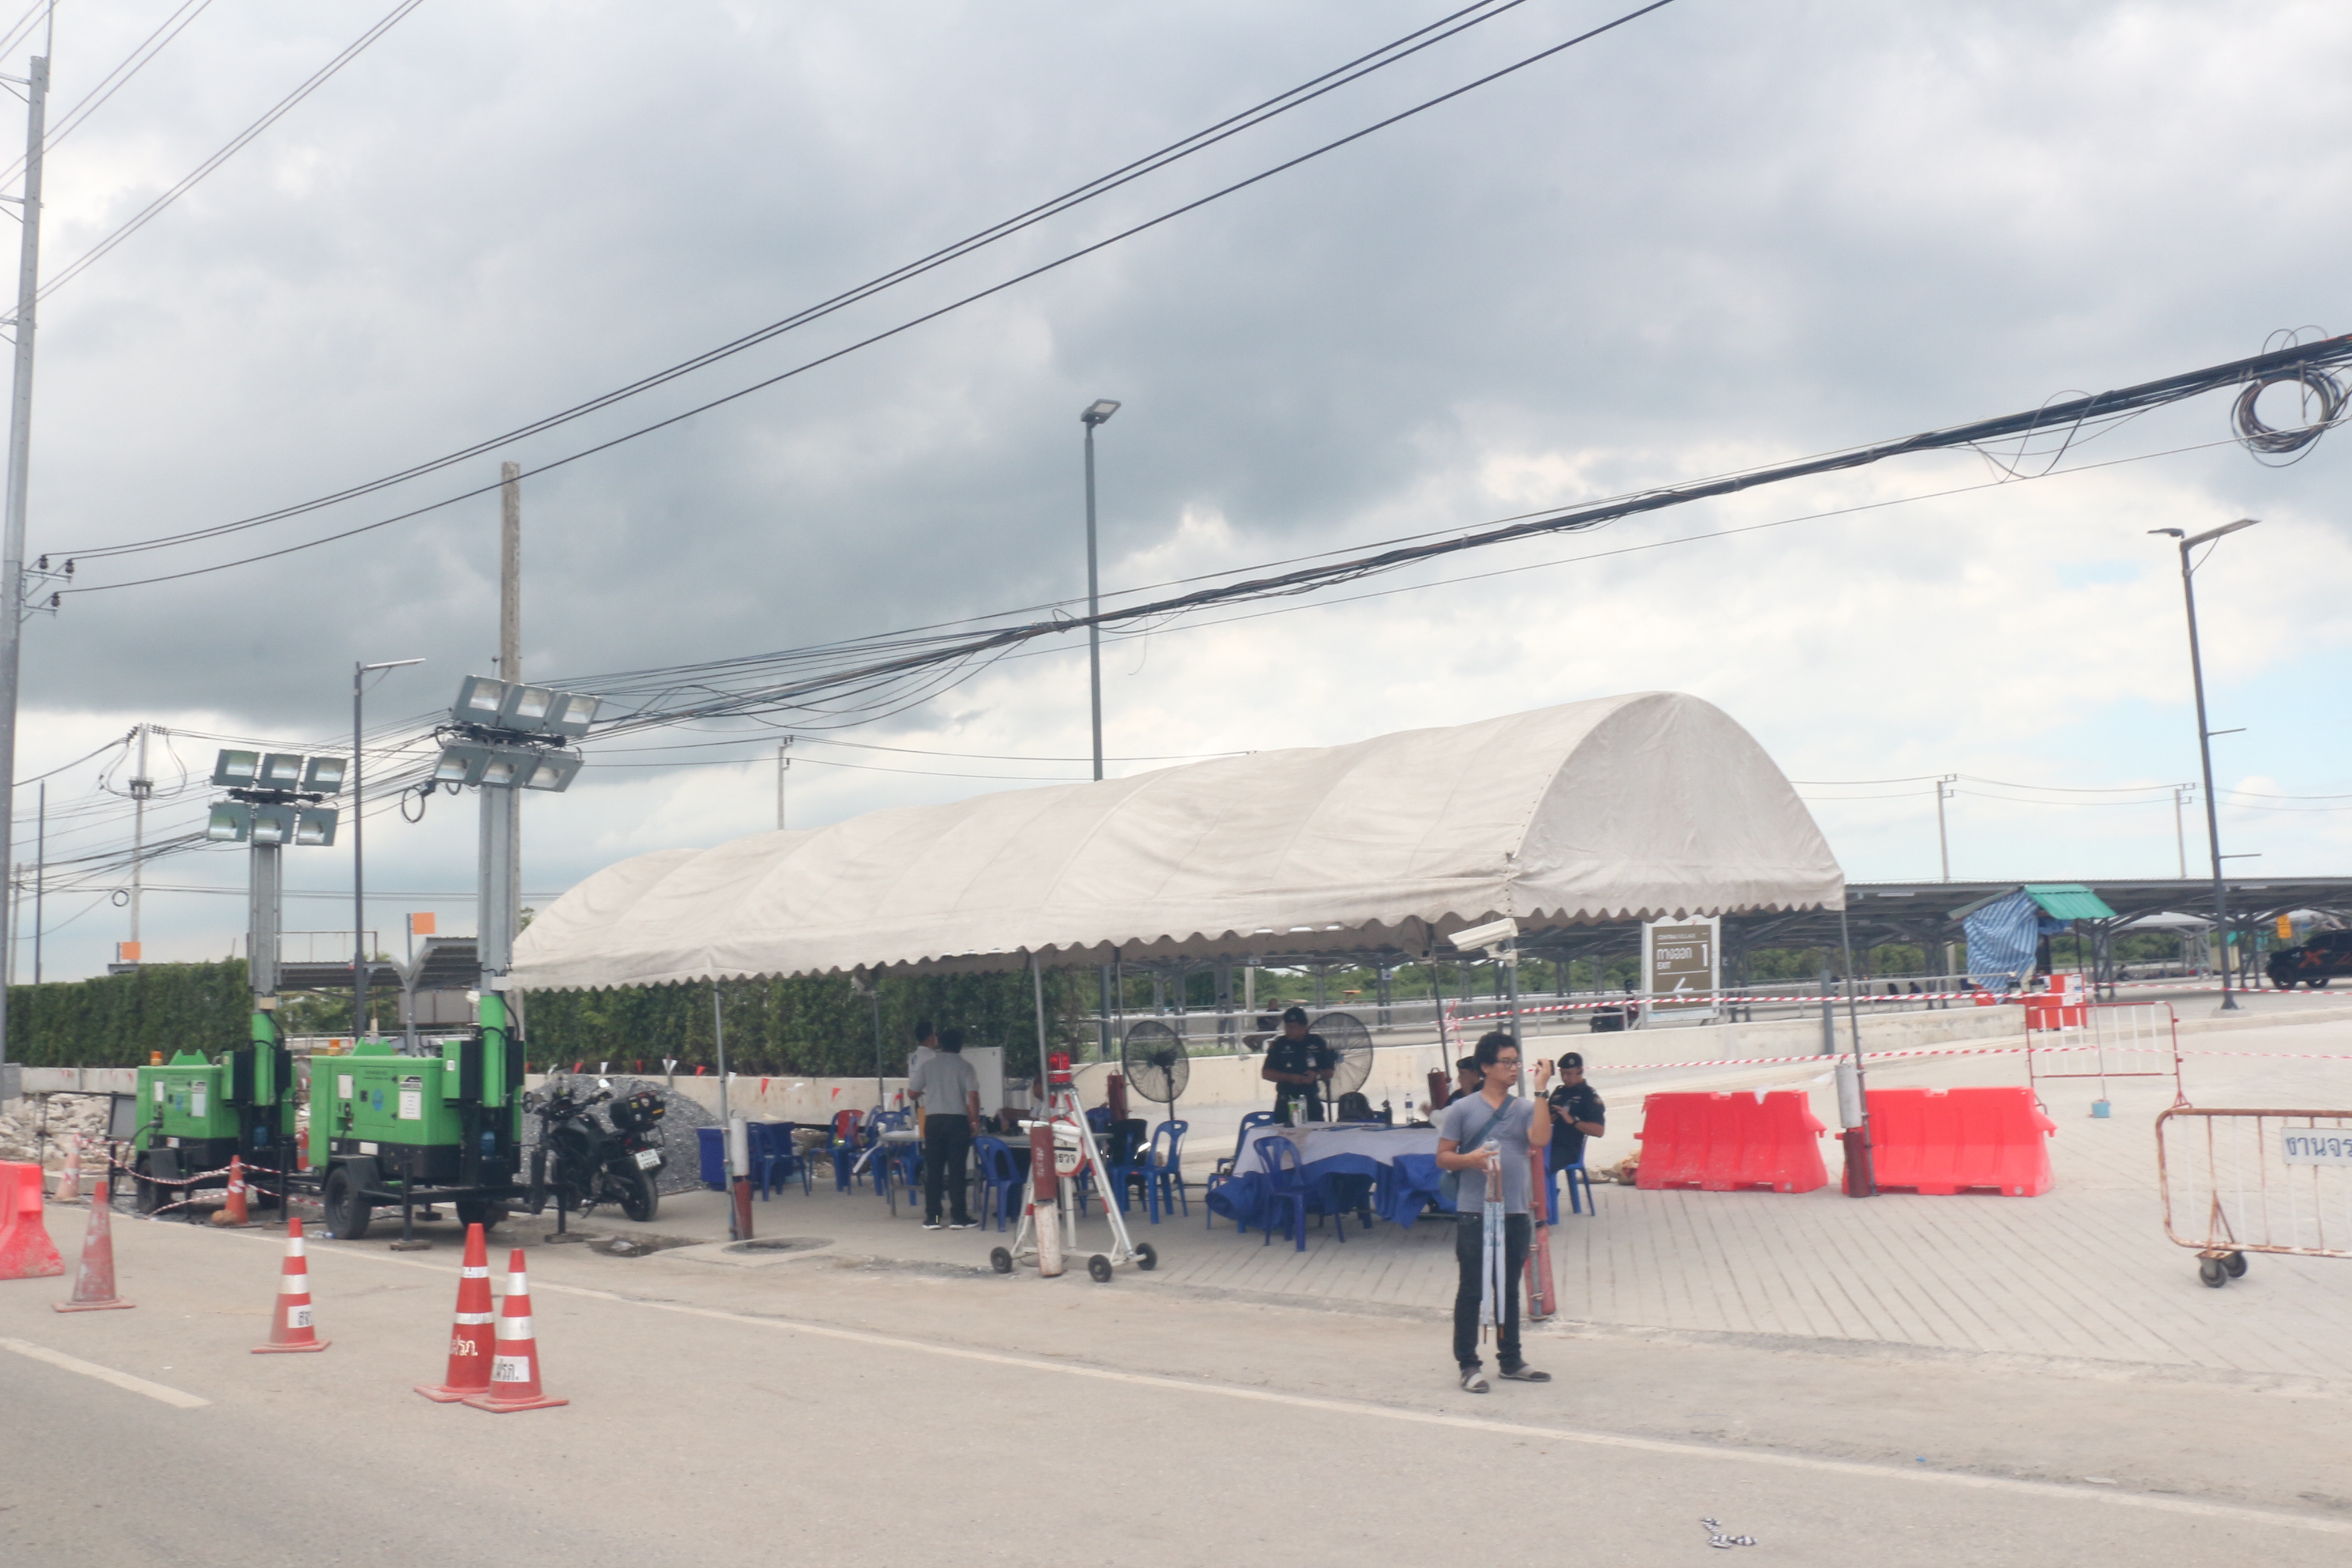 AOT's tent in front of Central Village on Aug. 29.